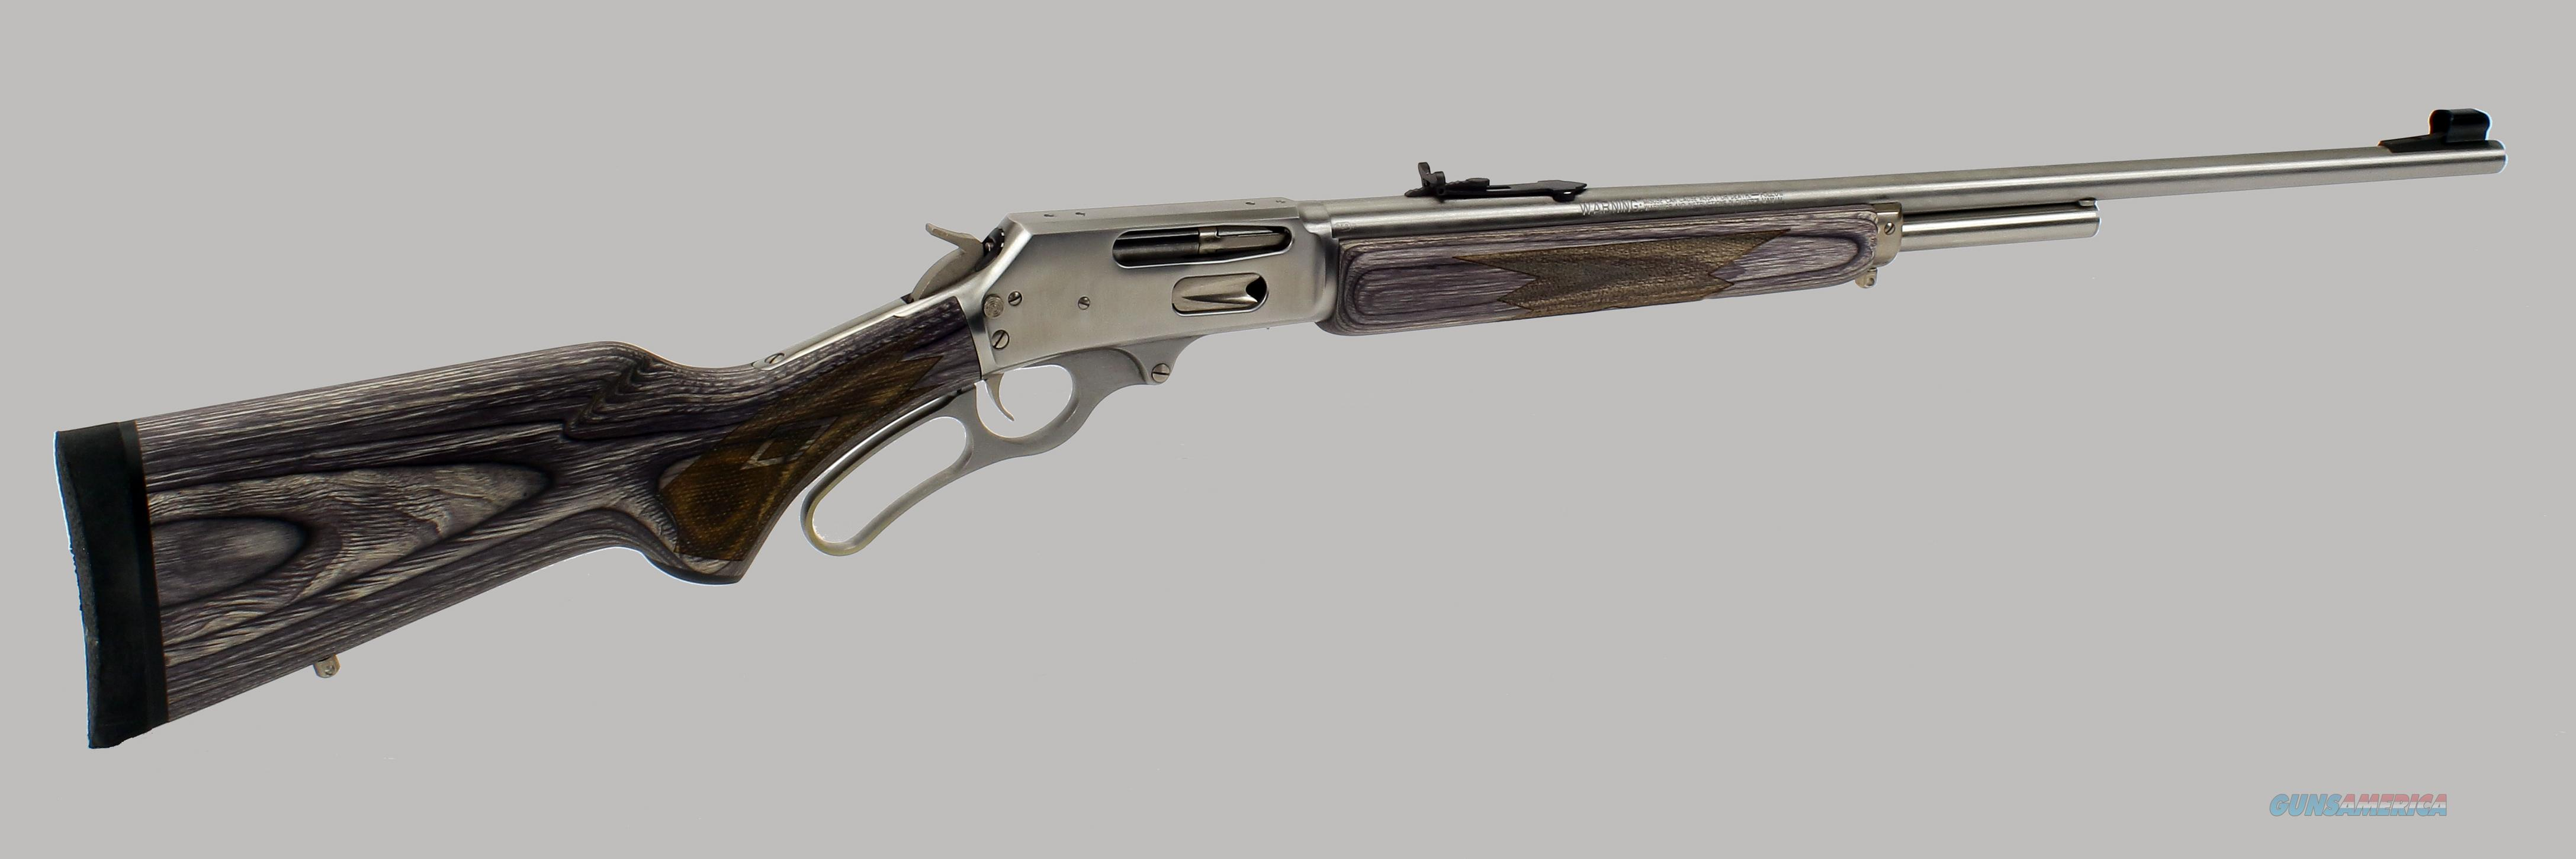 Marlin Rifle Pics, Weapons Collection